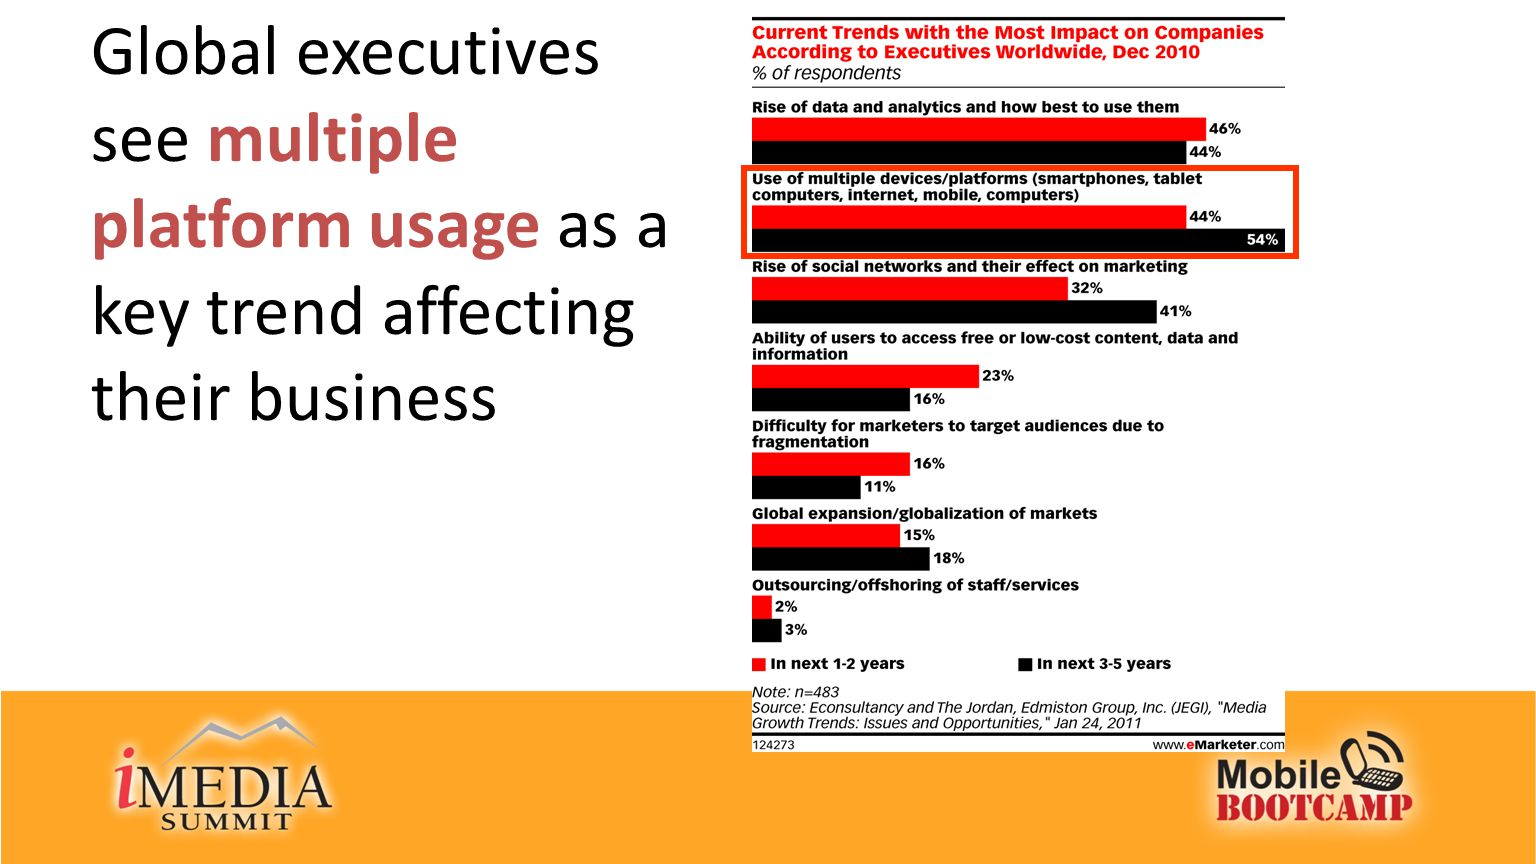 Global executives see multiple platform usage as a key trend affecting their business